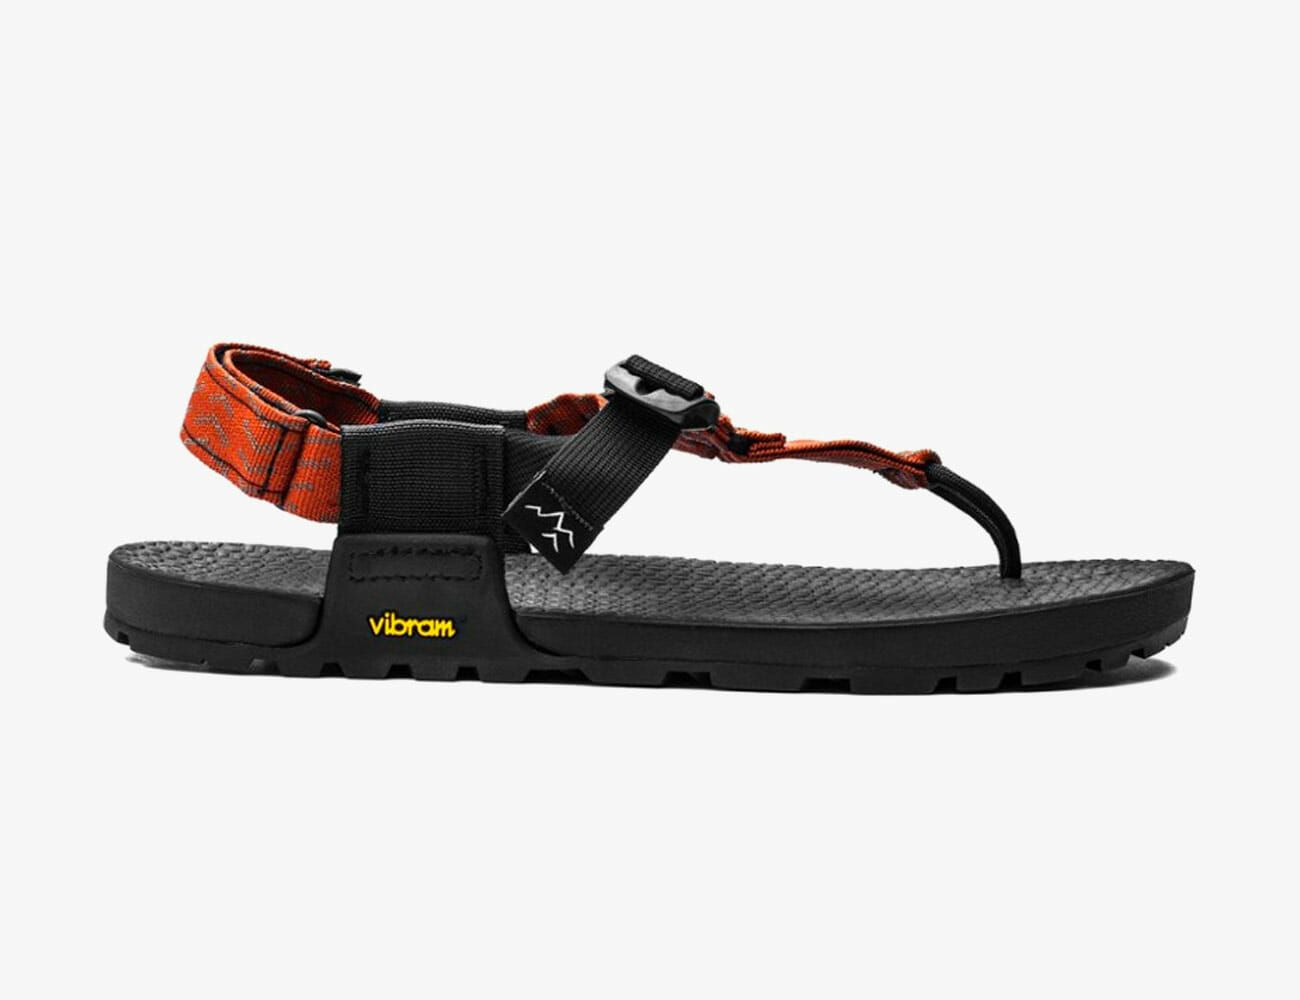 The Best Sandals for Hiking in 2019